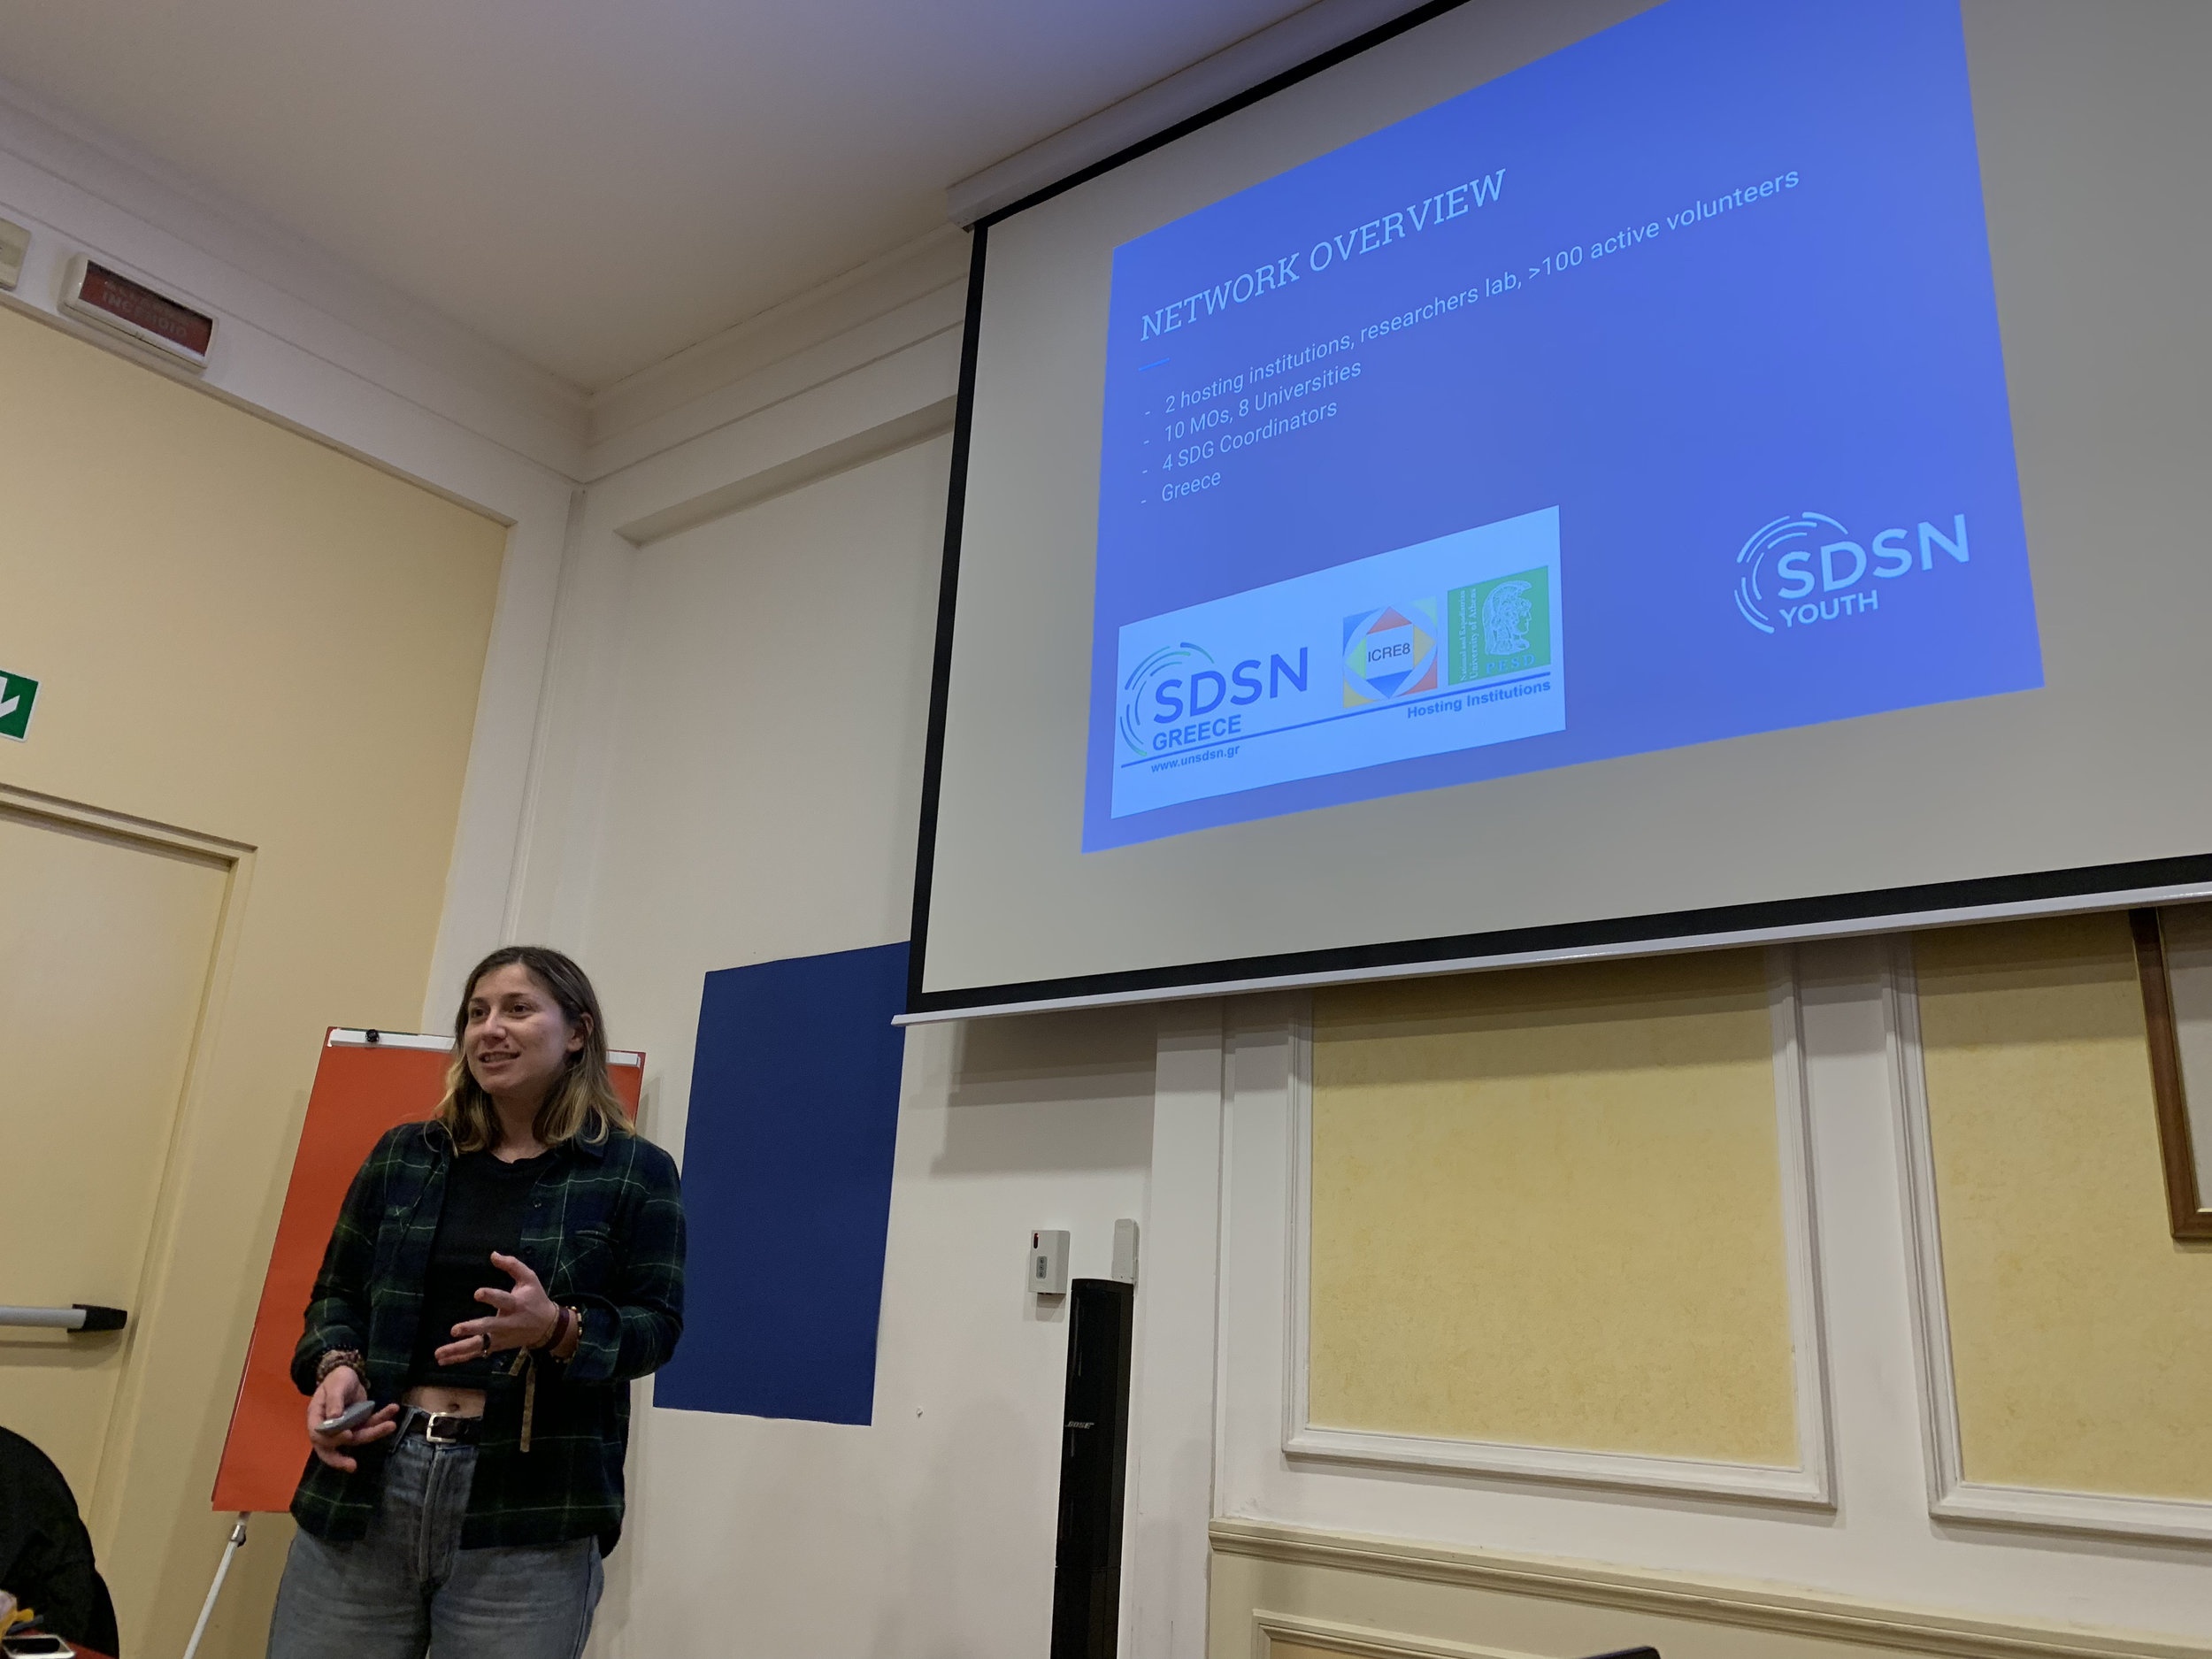 Cristina Christoforou Livani gives an enthusiastic presentation about SDSN Greece.  Photo Credits: Yuntong Man/SDSN Youth